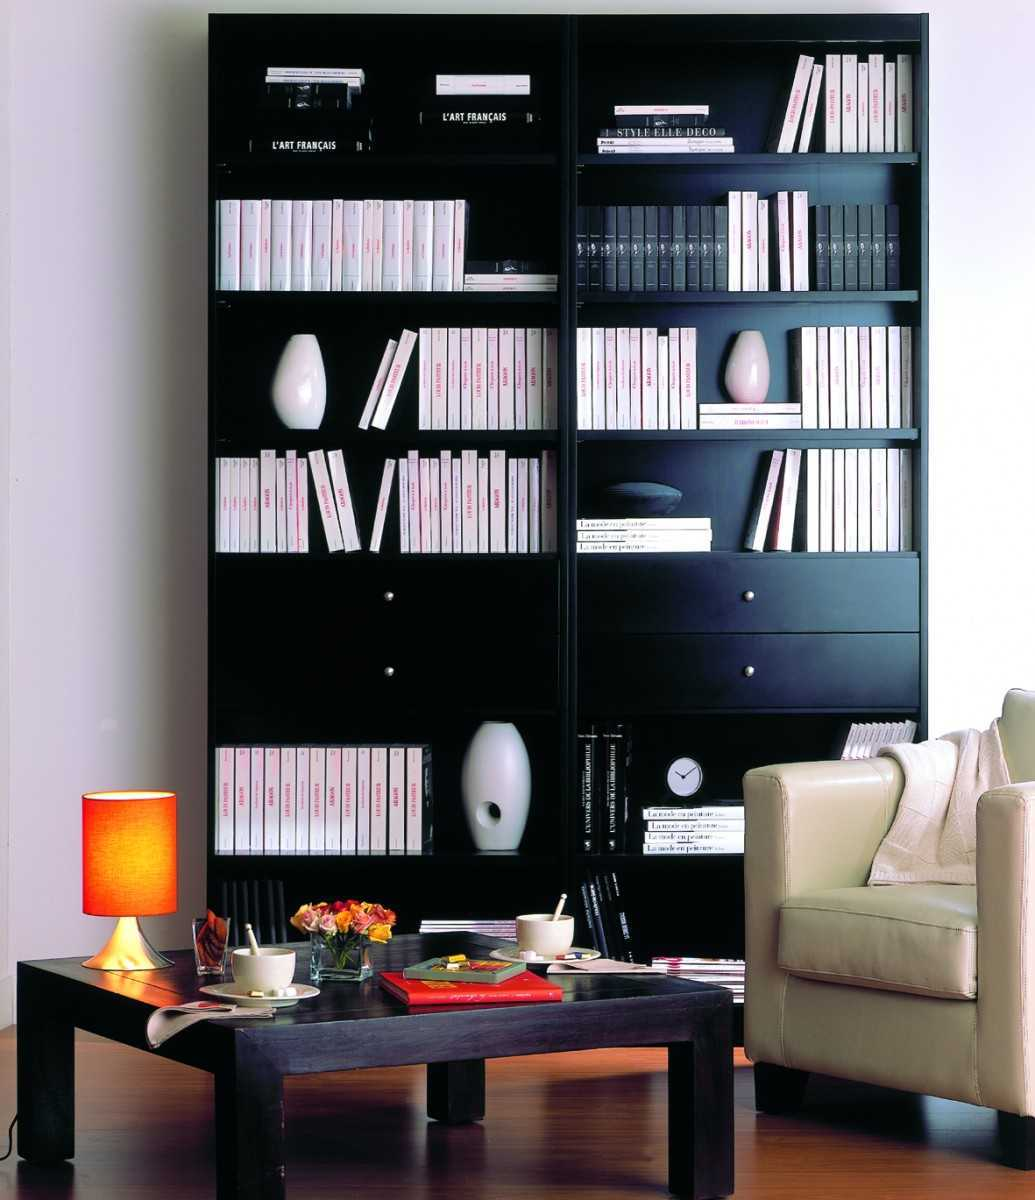 oc ane la maison des bibliotheques. Black Bedroom Furniture Sets. Home Design Ideas